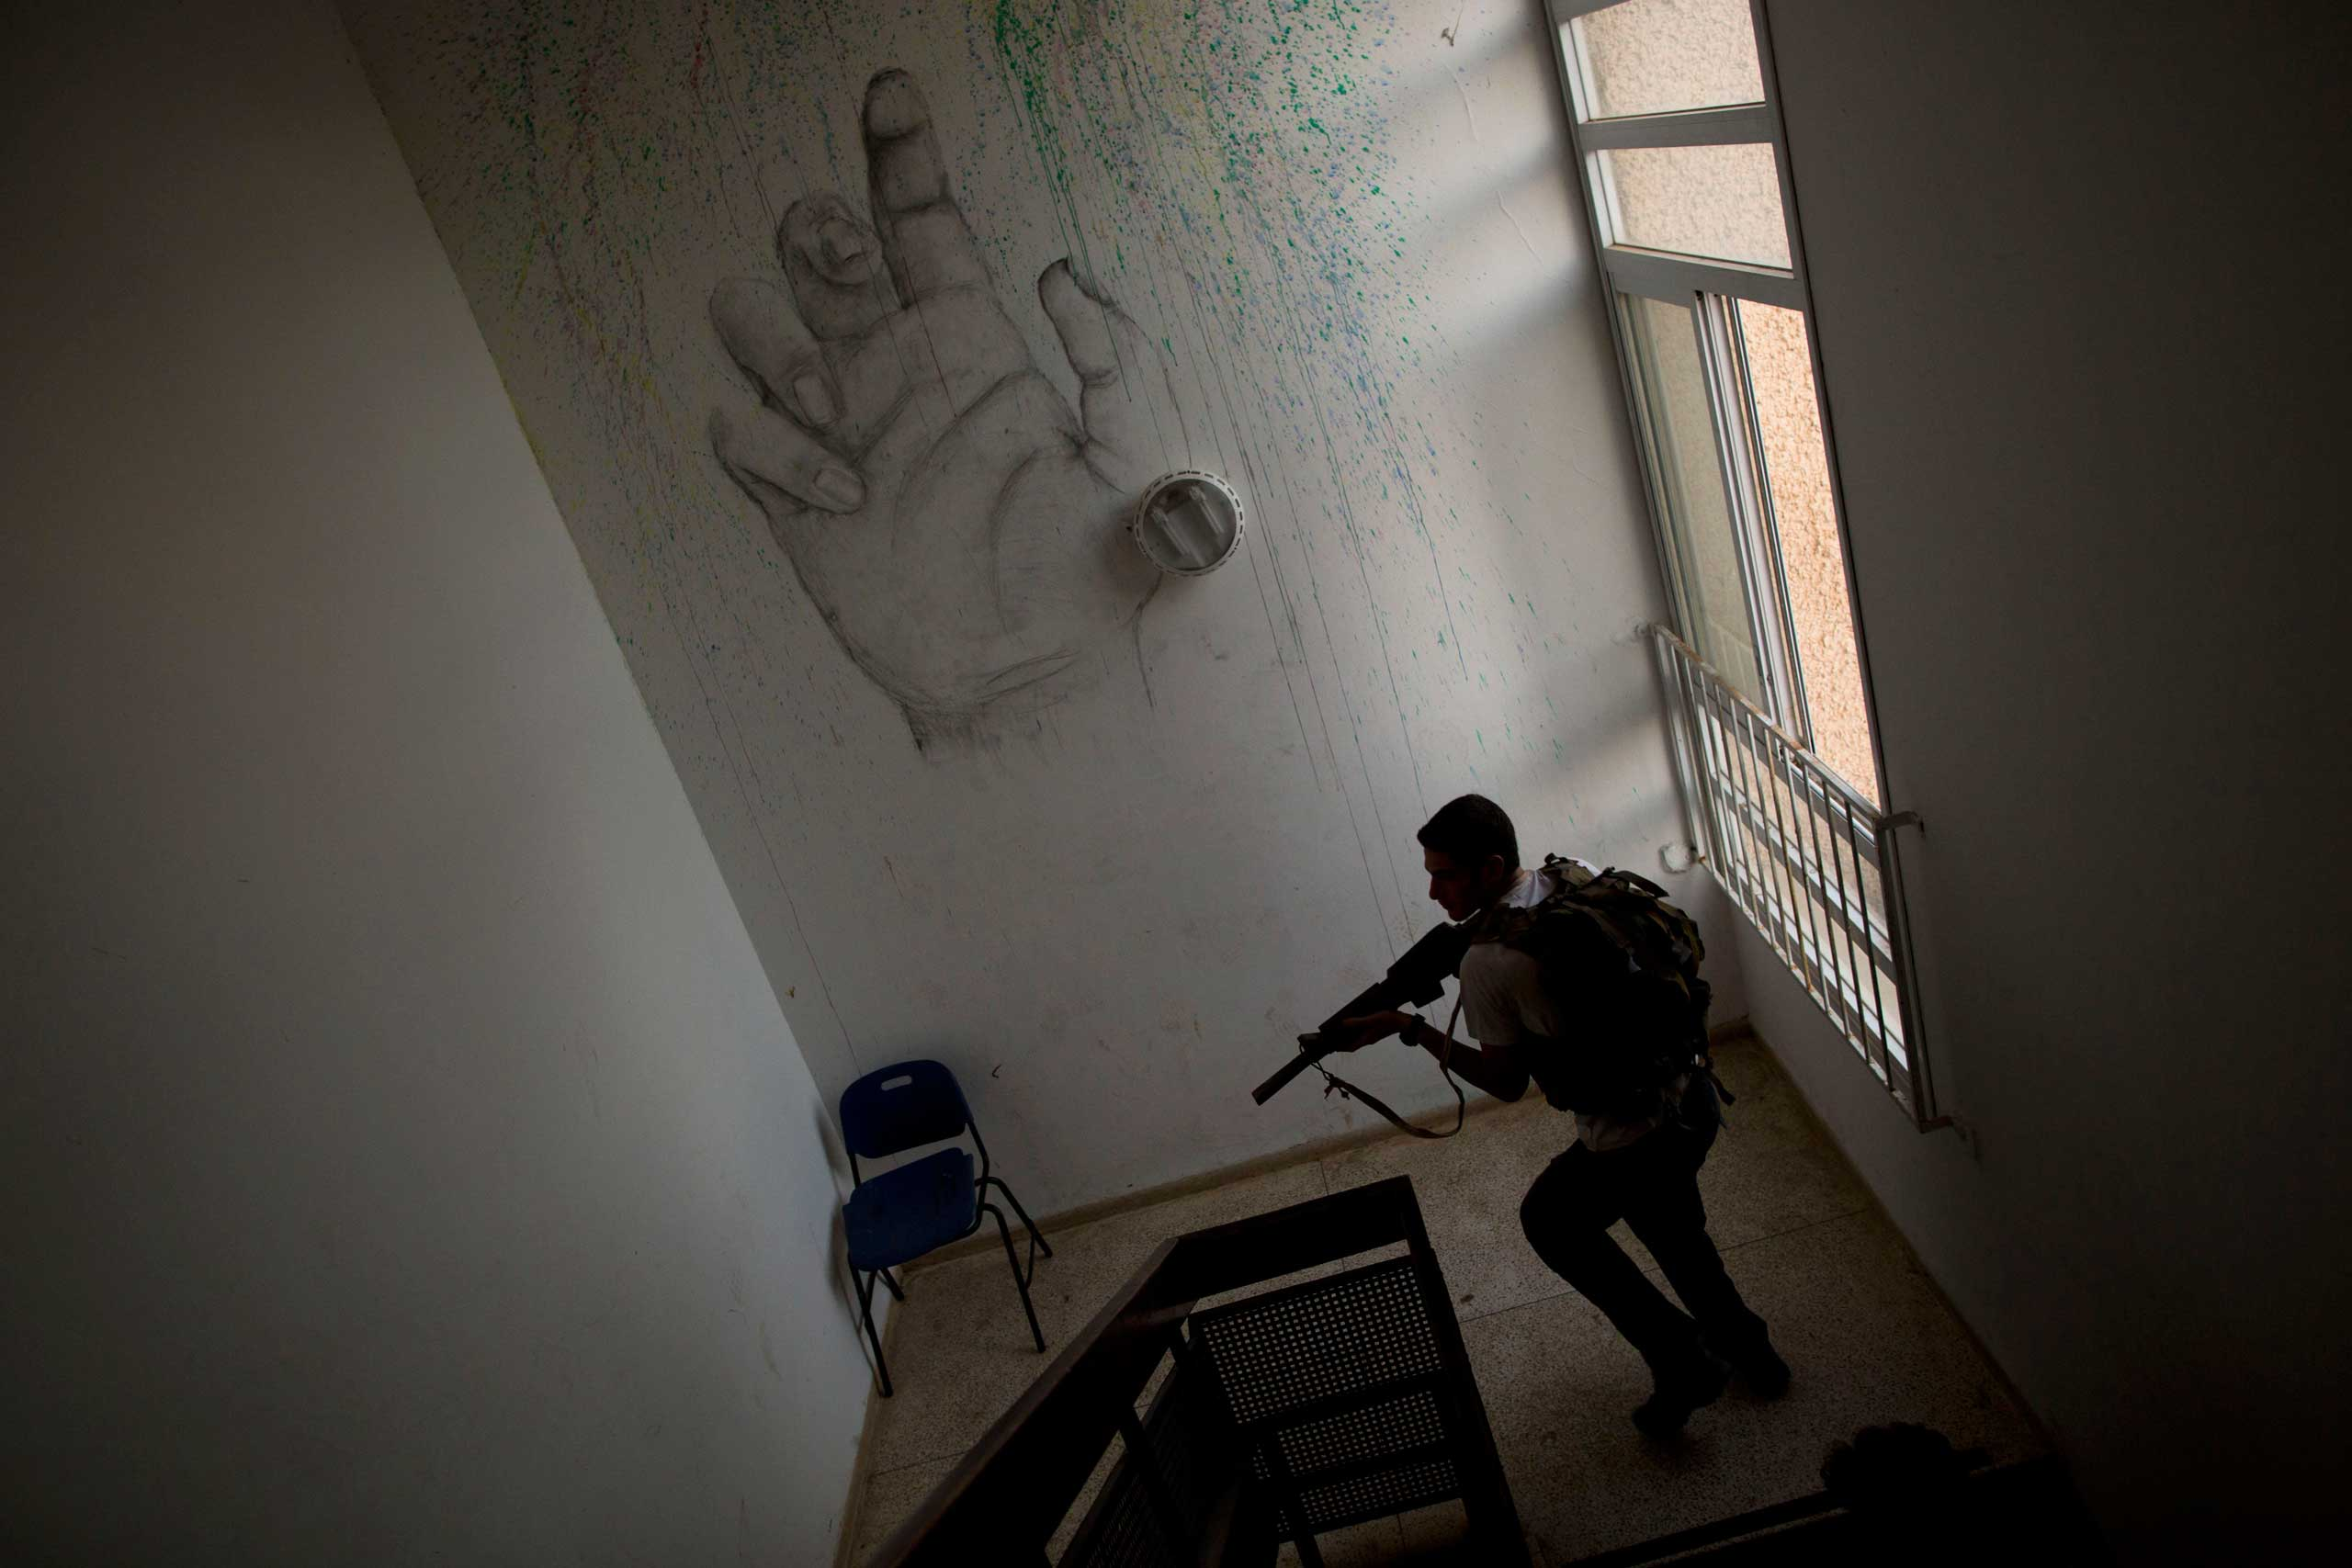 A high-school senior preparing to join the Israeli military participates in an urban fighting drill in Kibbutz Mizra, northern Israel, March 24, 2015.